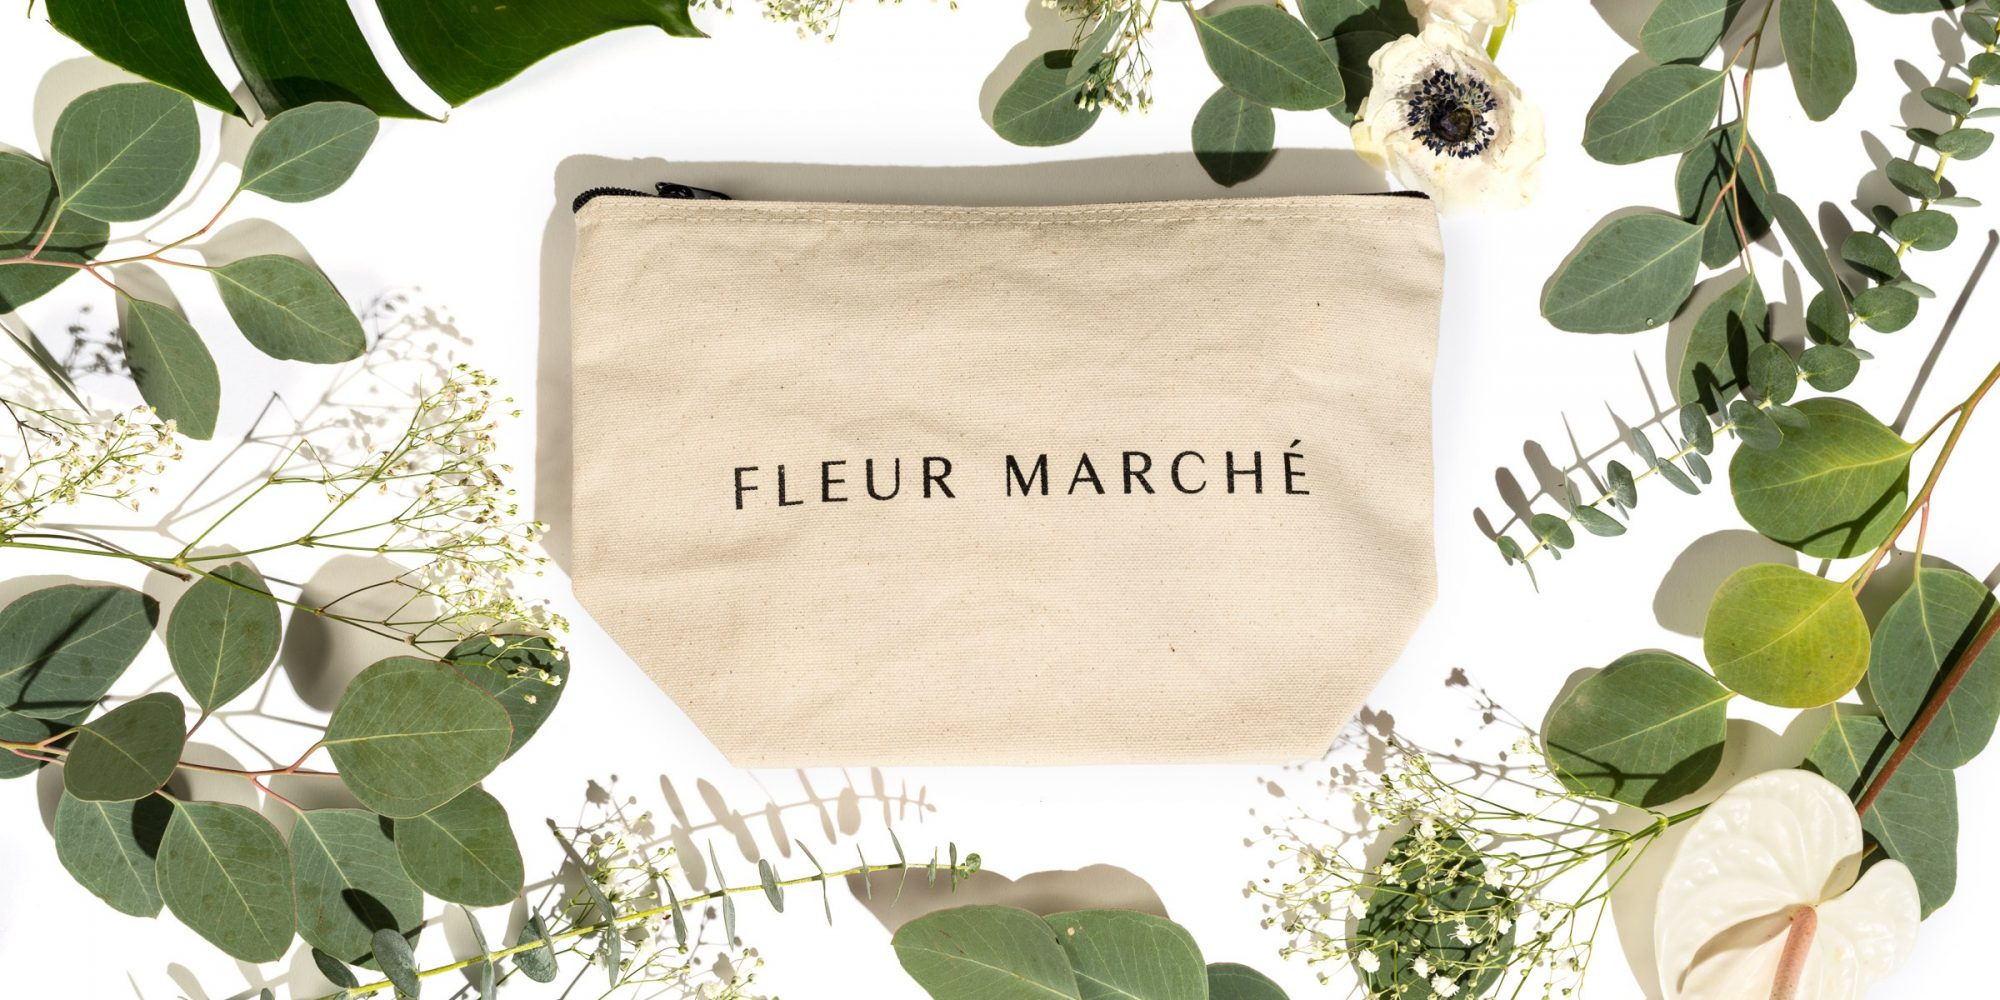 Fleur Marché Helped Make CBD Shopping Fashionable. Now, It Has To Make It More Than A Fashion.